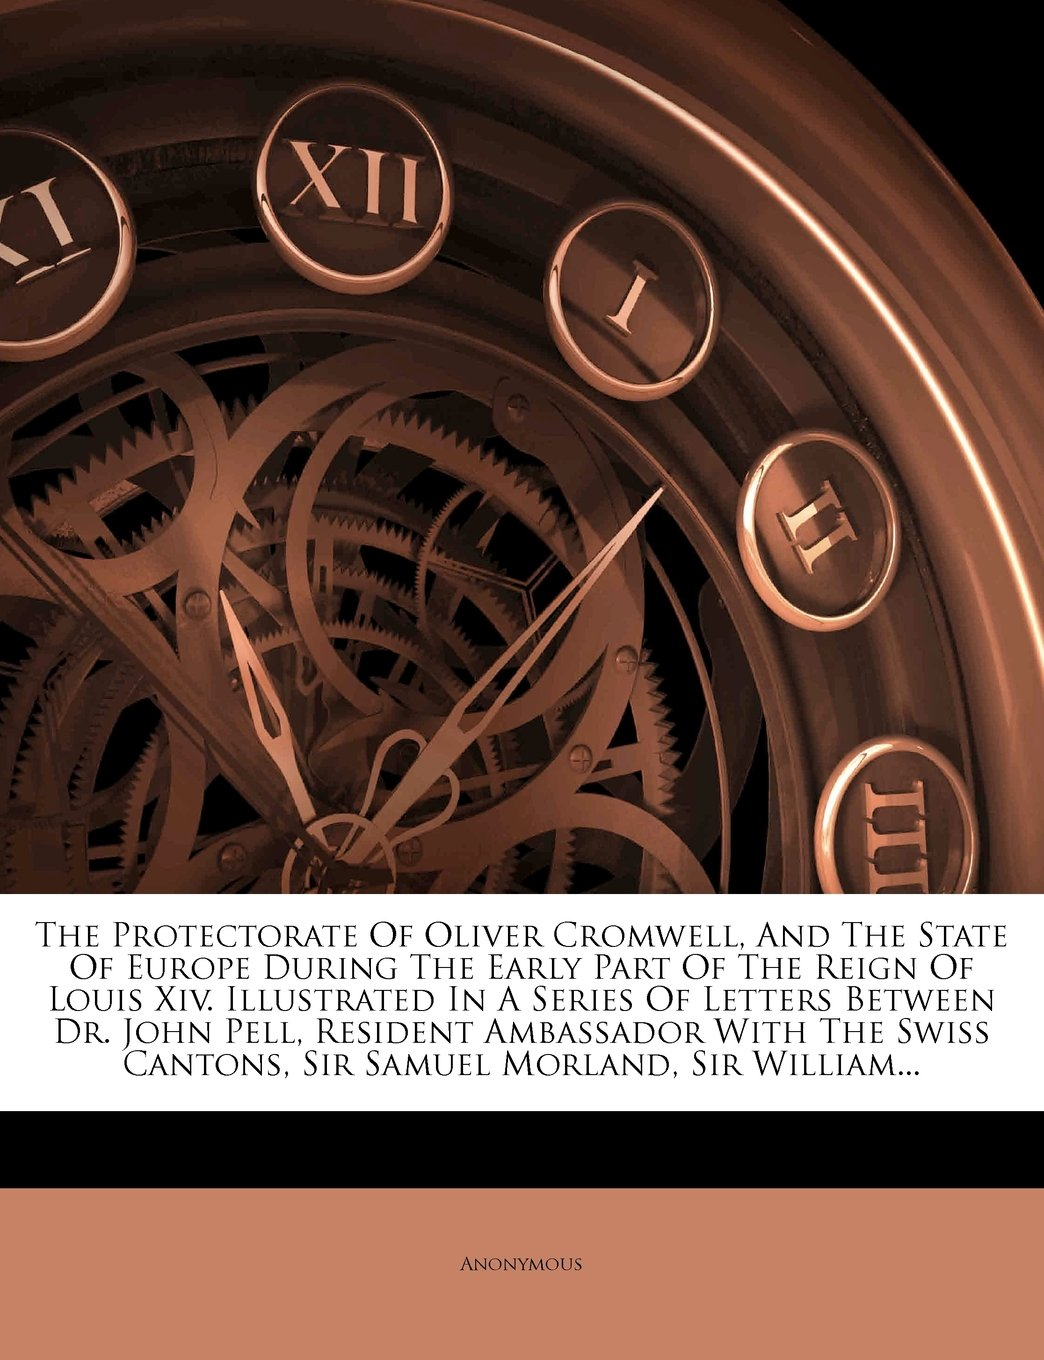 The Protectorate Of Oliver Cromwell, And The State Of Europe During The Early Part Of The Reign Of Louis Xiv. Illustrated In A Series Of Letters ... Cantons, Sir Samuel Morland, Sir William... PDF